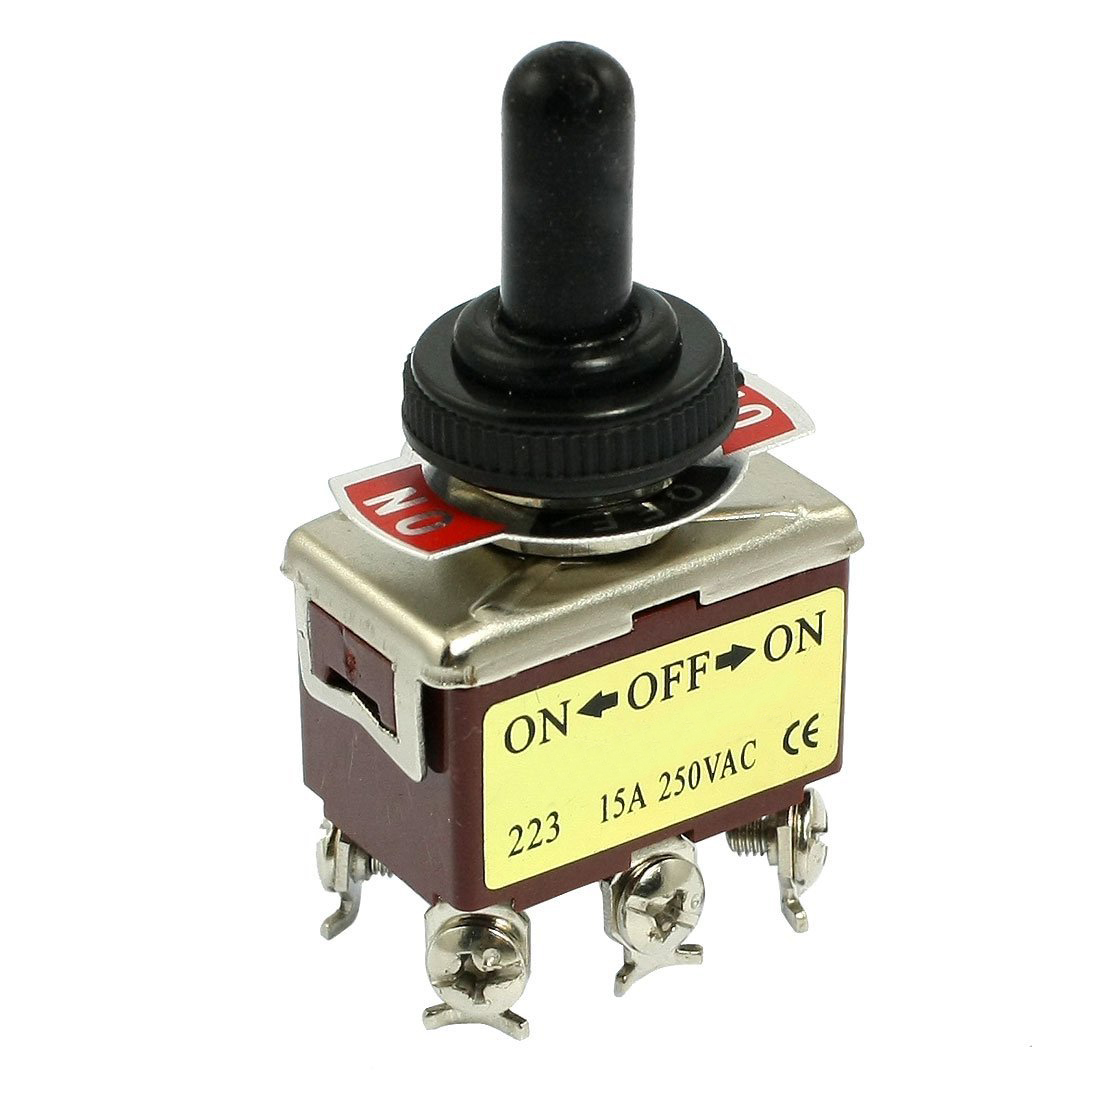 Promotion! AC 250V 15A 6 Pin DPDT On/Off/On 3 Position Mini Toggle Switch 2pcs lot mini 3 pin round black spdt on off snap in rocker switch 6a 250v ac 828 promotion